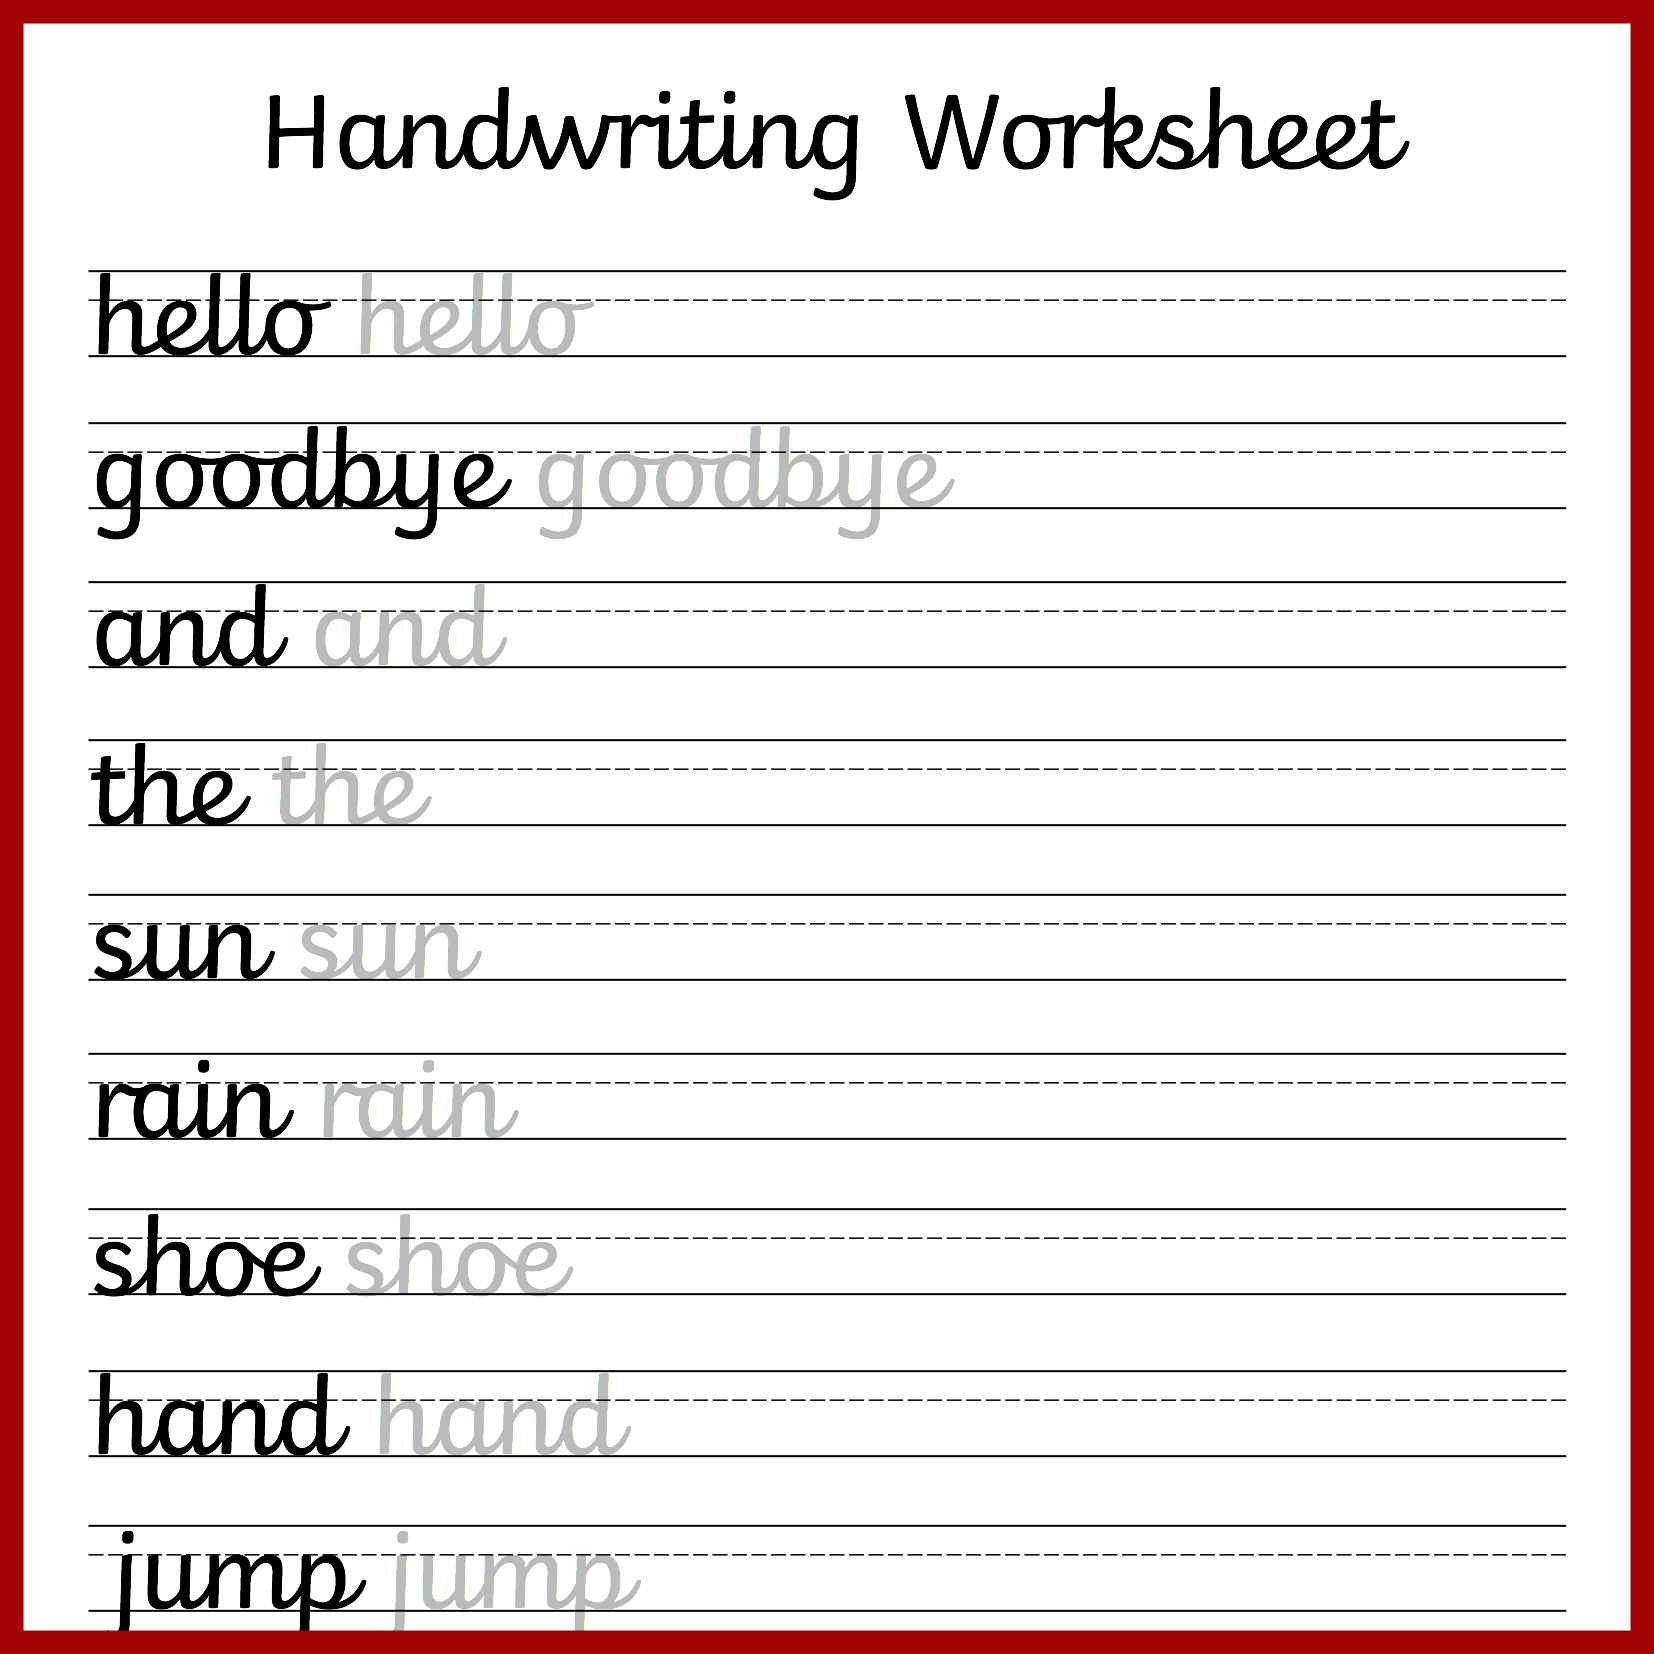 Handwriting Worksheets Printable Worksheets